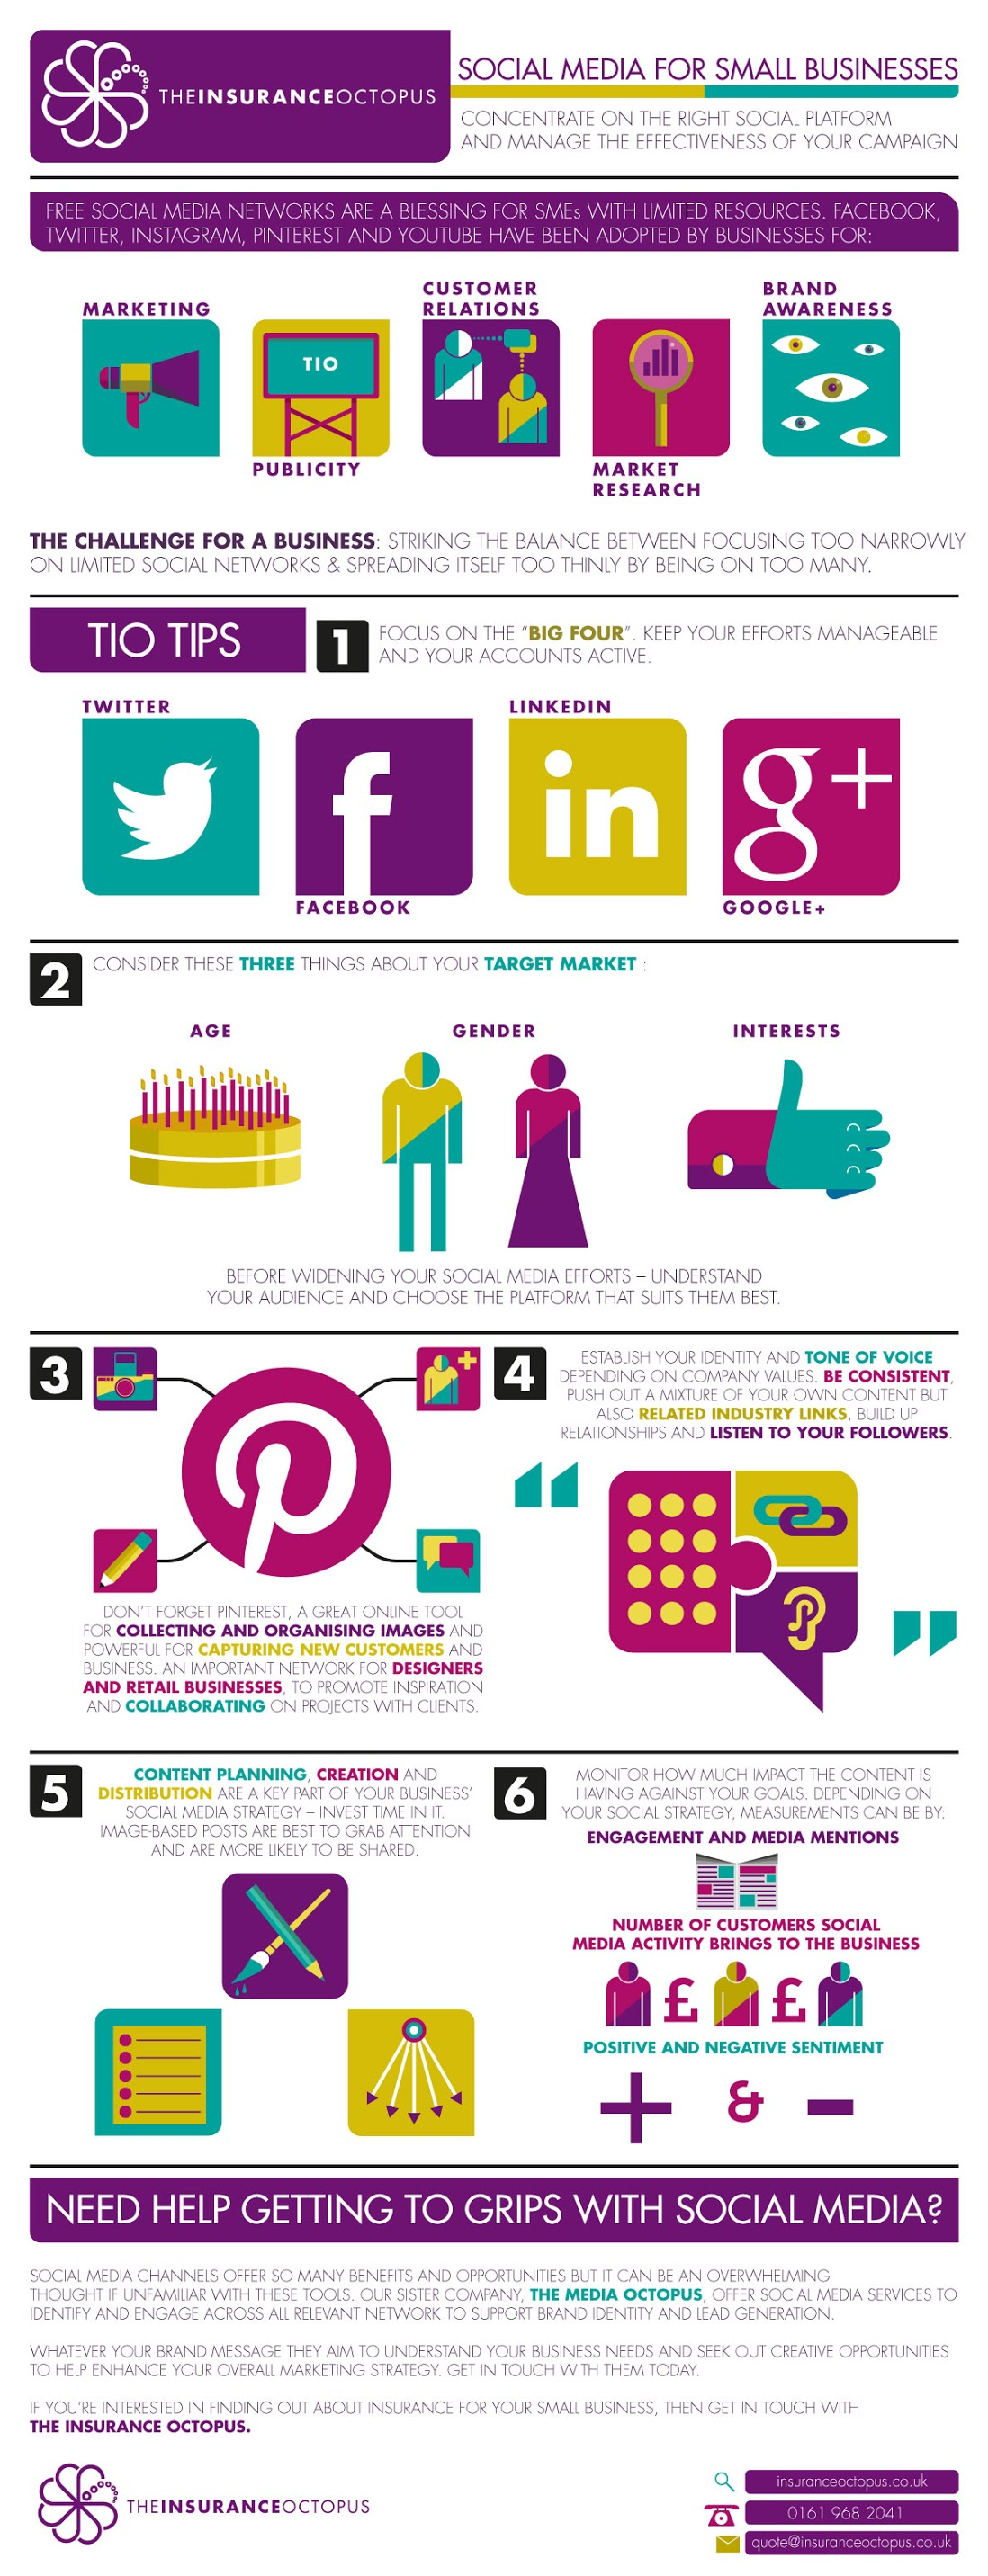 How To Make The Most Out Of Your #SocialMedia - #infographic